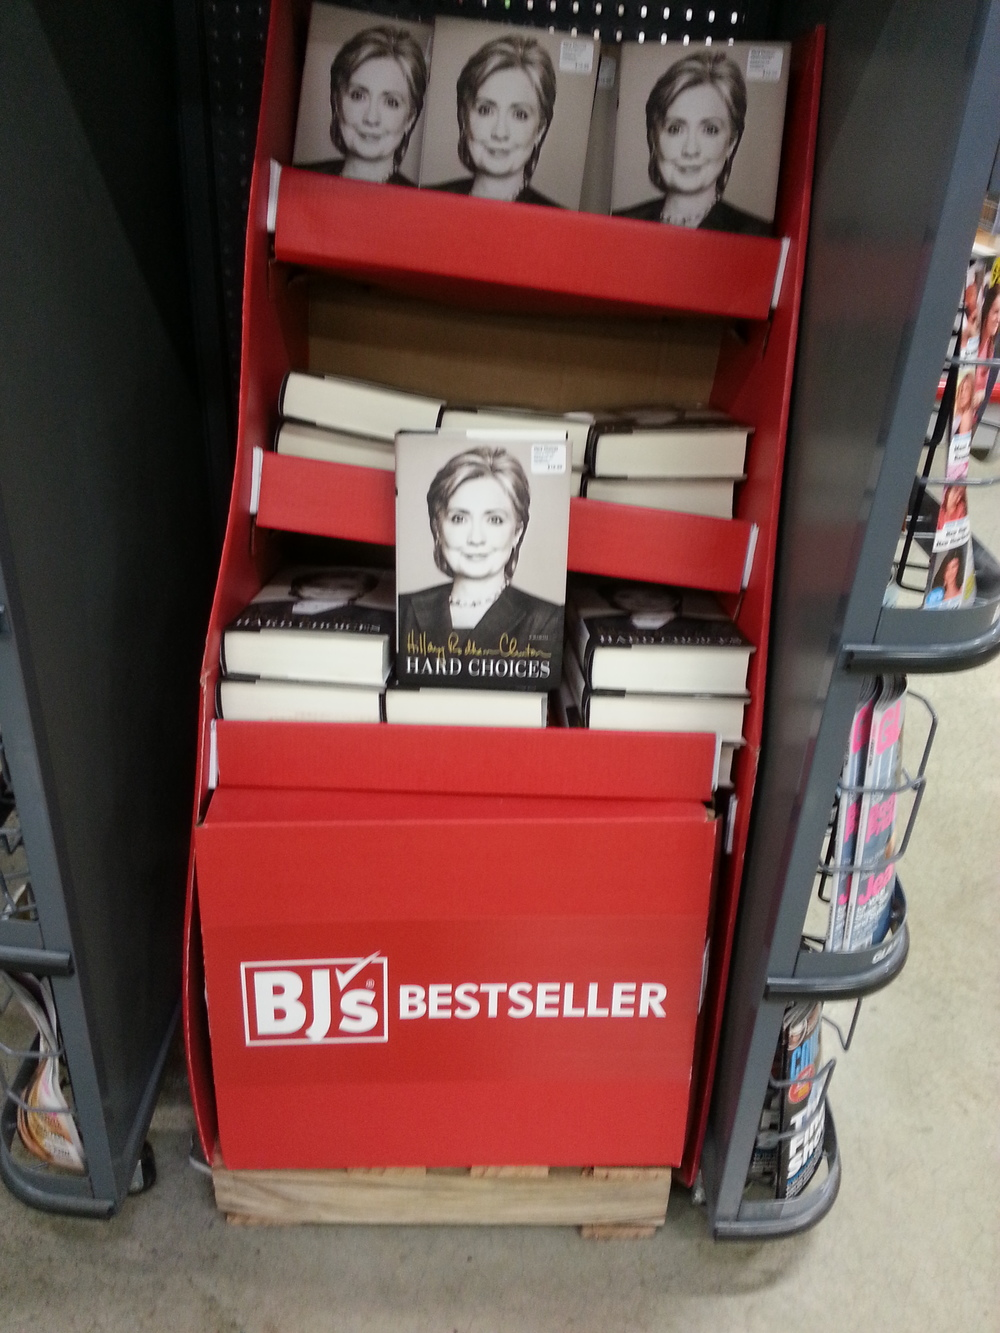 "BJ's Bestseller - ""Hard Choices"", by Hillary Clinton"